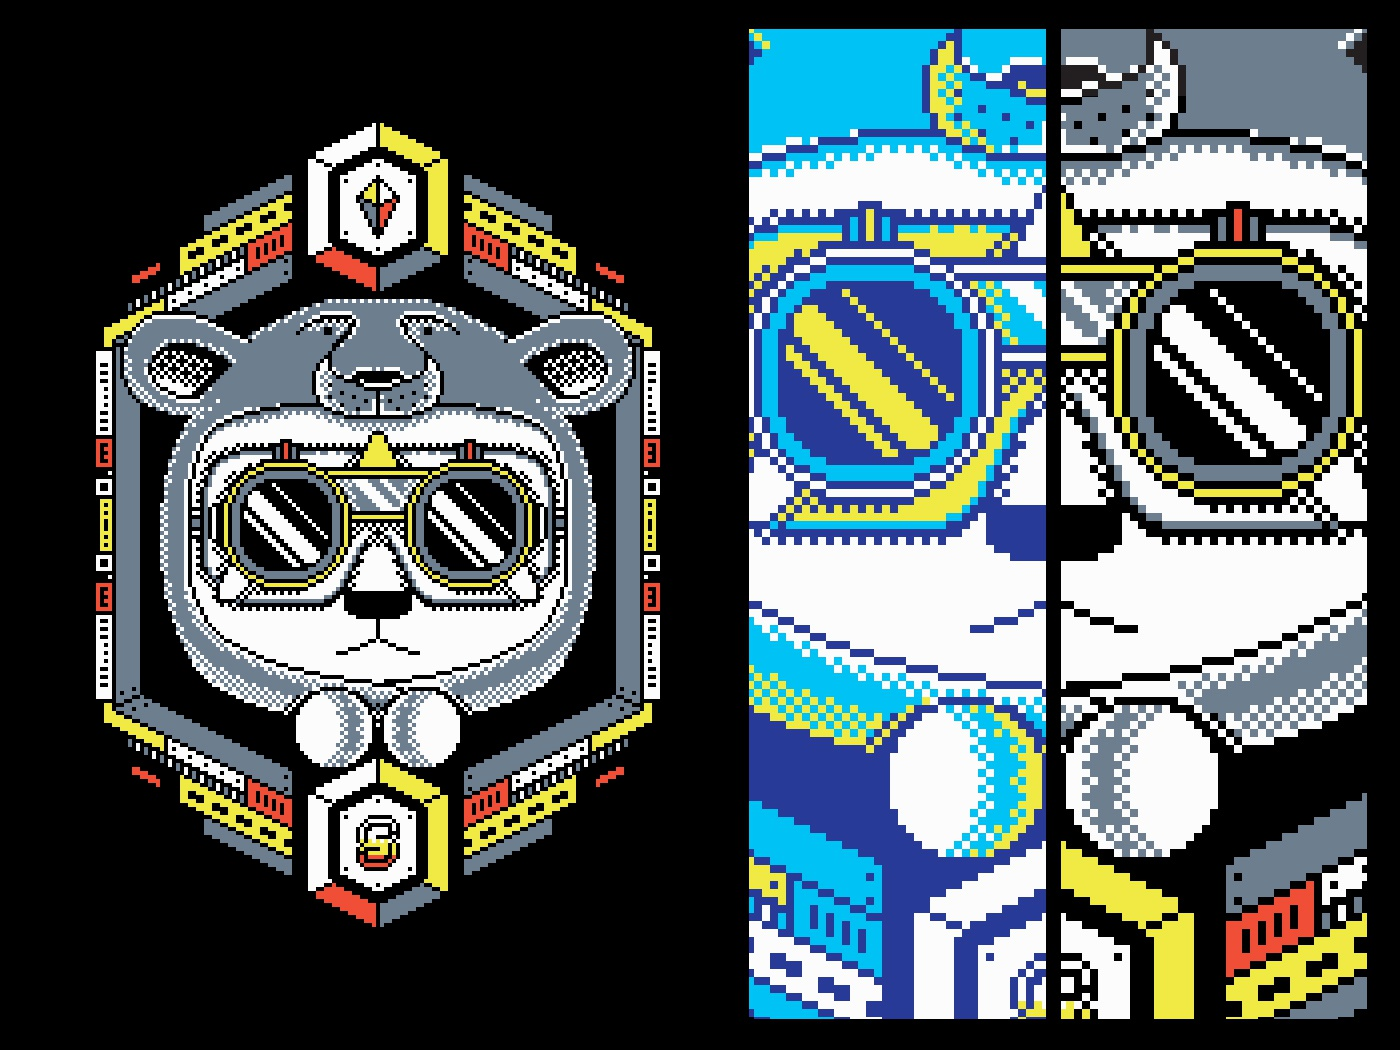 Polarized retro game hexagonal debutshot debut 8bit googles panda bear isometric illustration pixel art